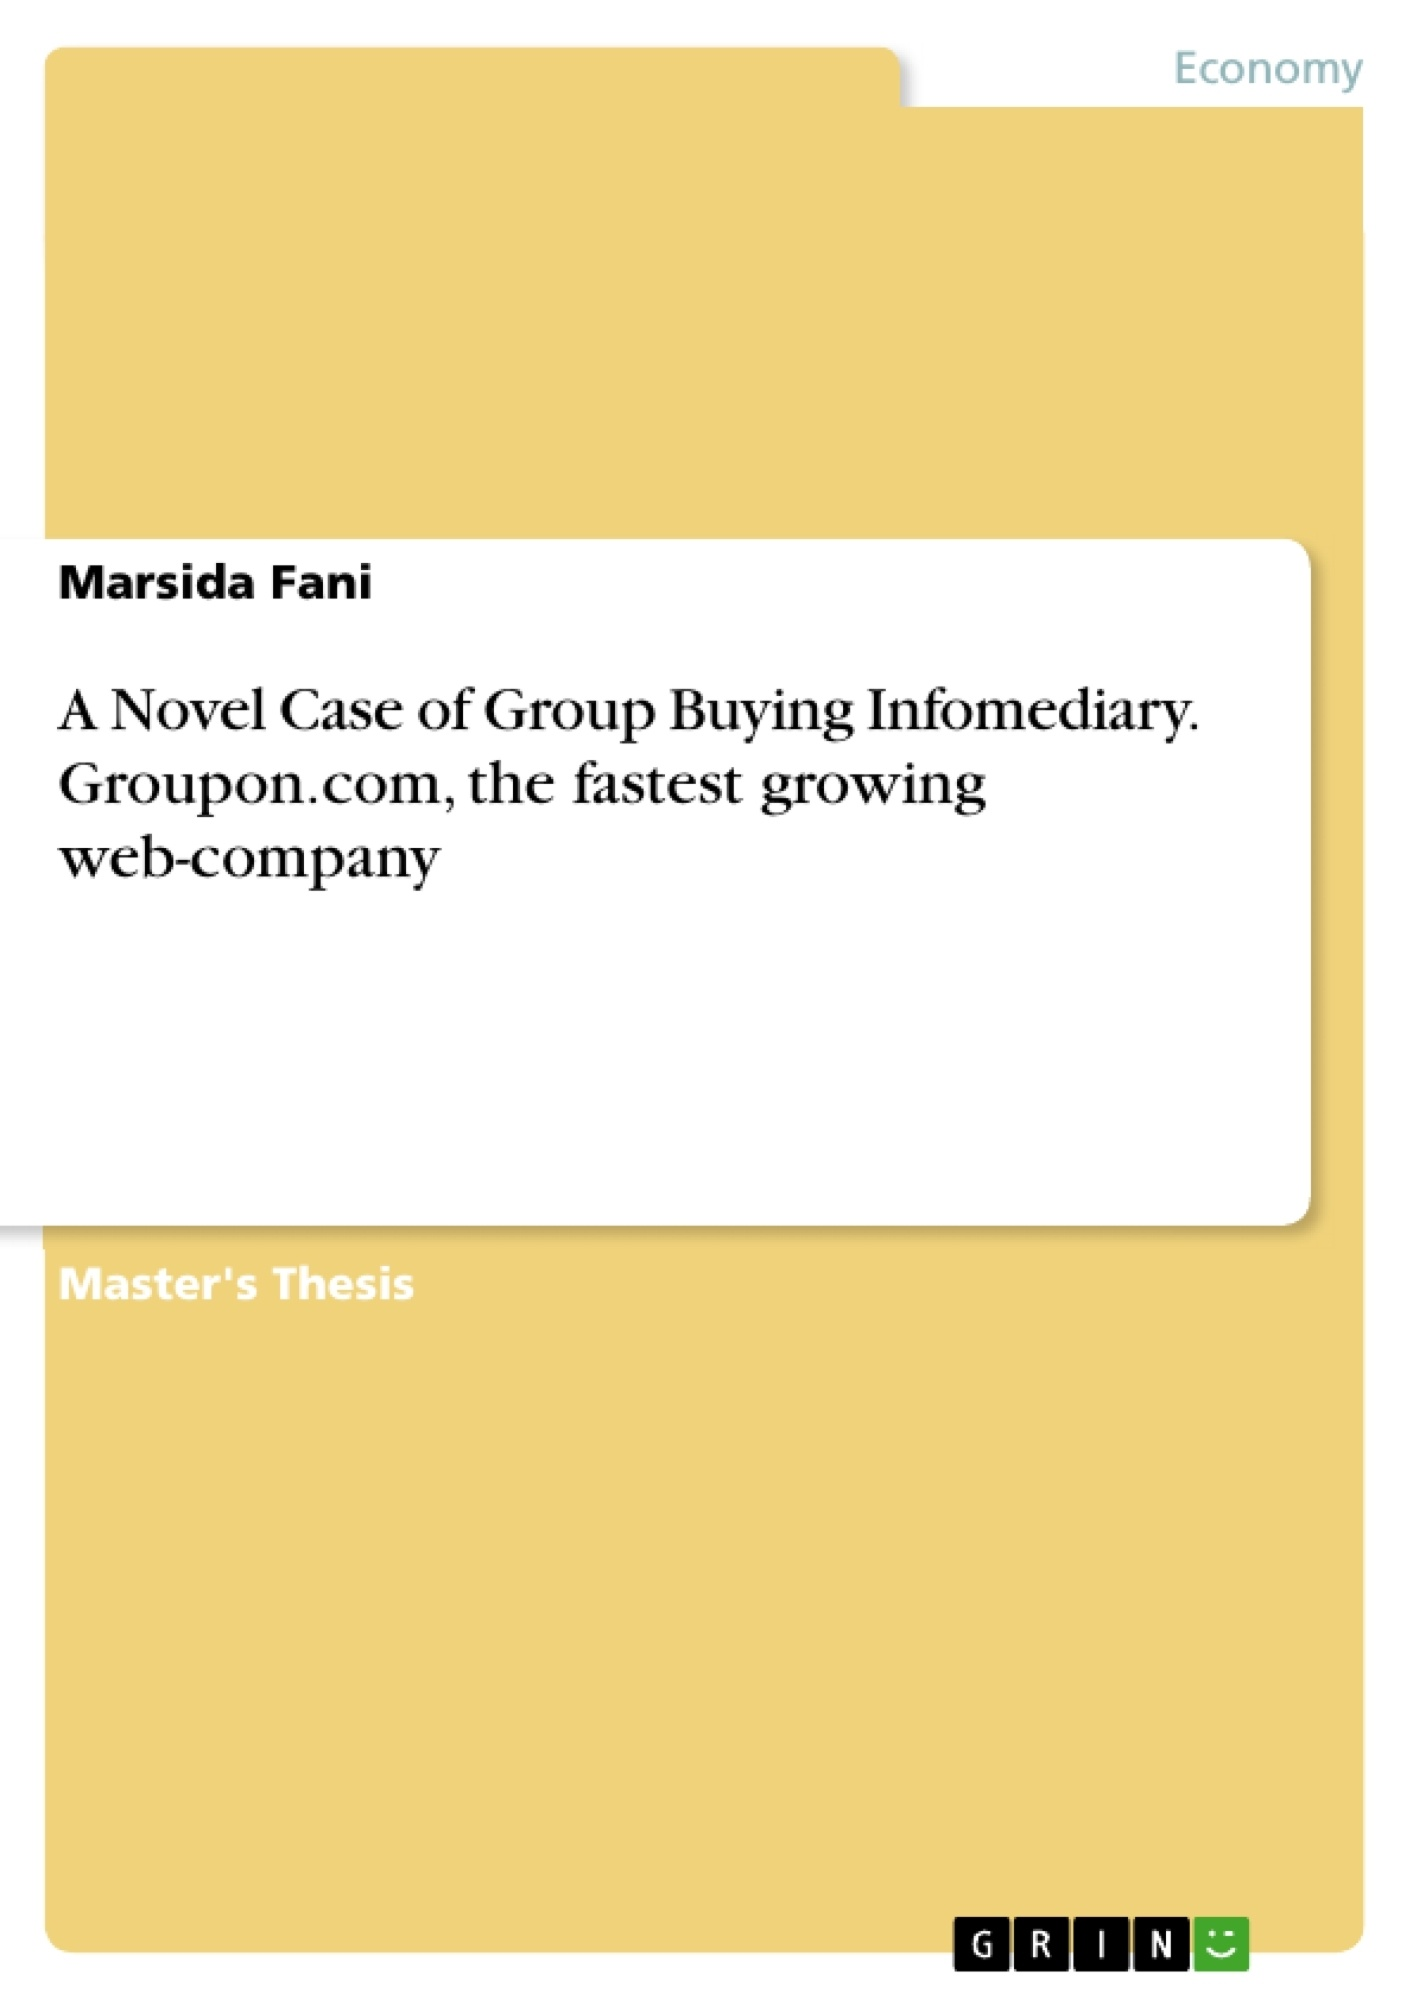 Title: A Novel Case of Group Buying Infomediary. Groupon.com, the fastest growing web-company